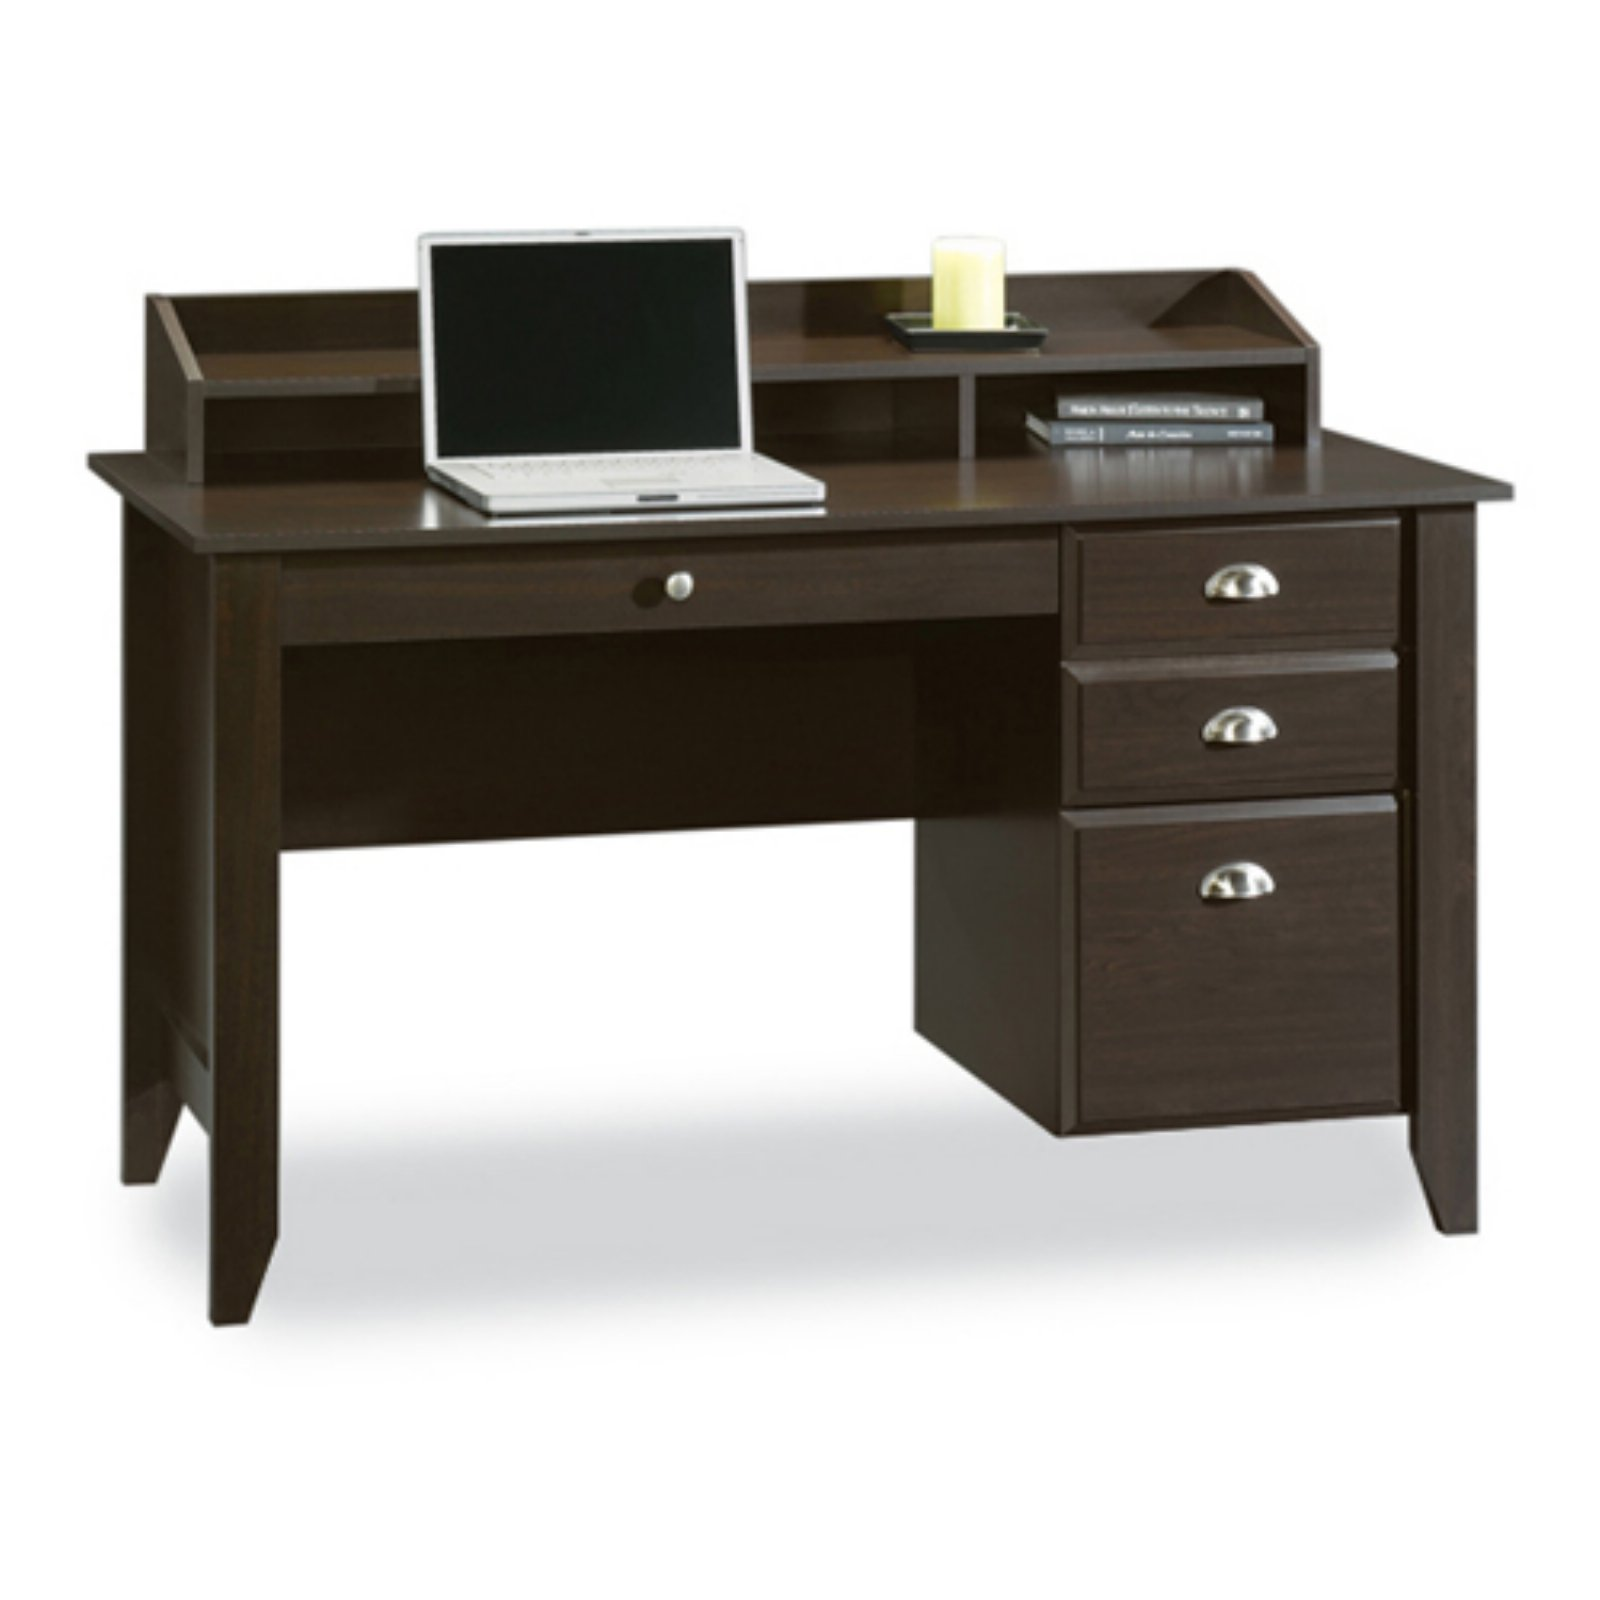 Sauder Shoal Creek Desk with Storage Drawers and Hutch, Jamocha Wood Finish